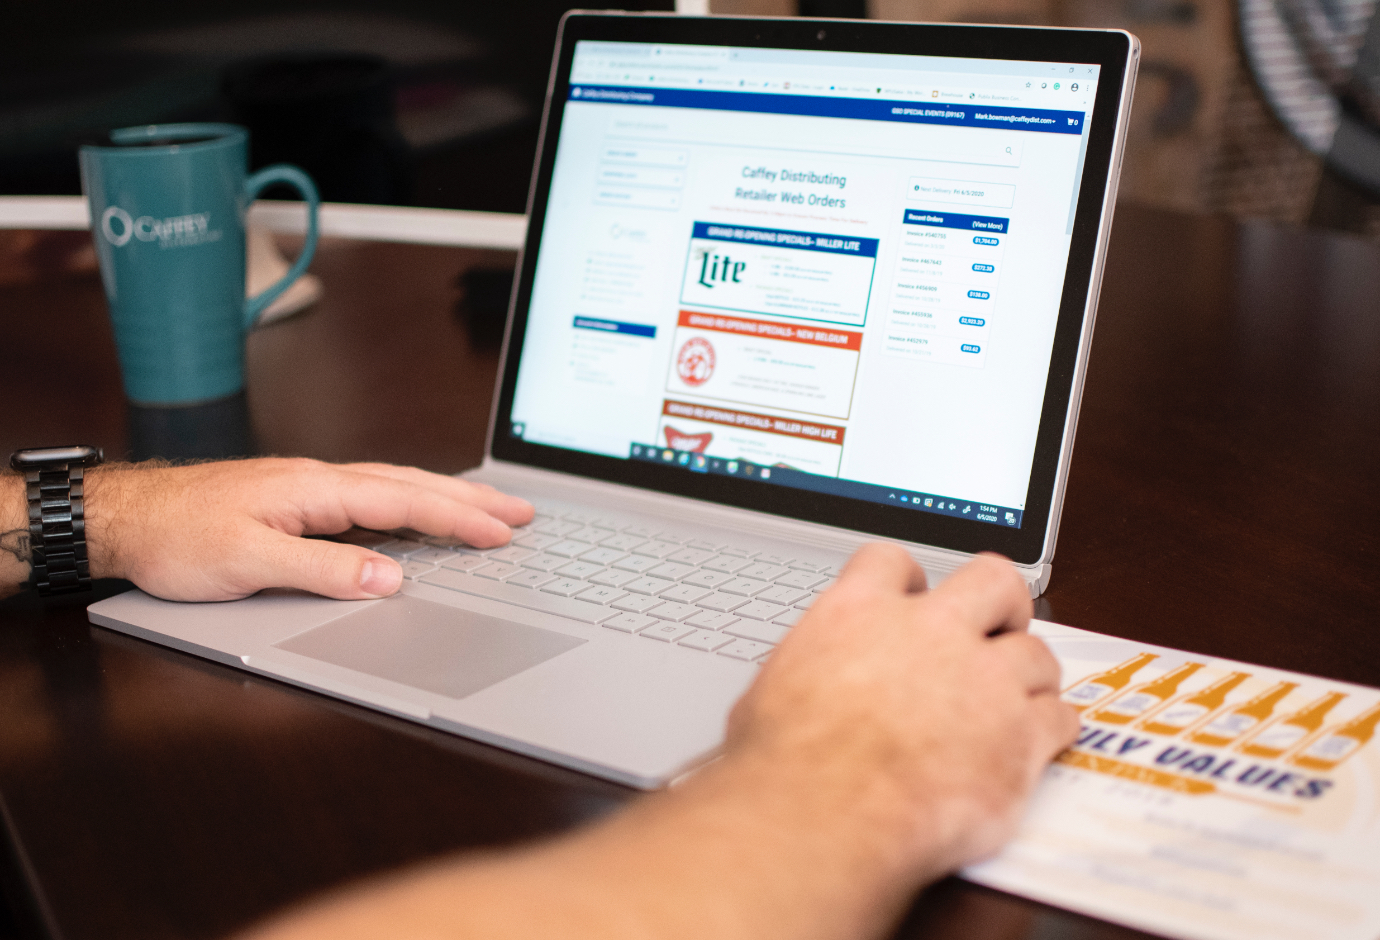 Ordering Caffey products on a laptop